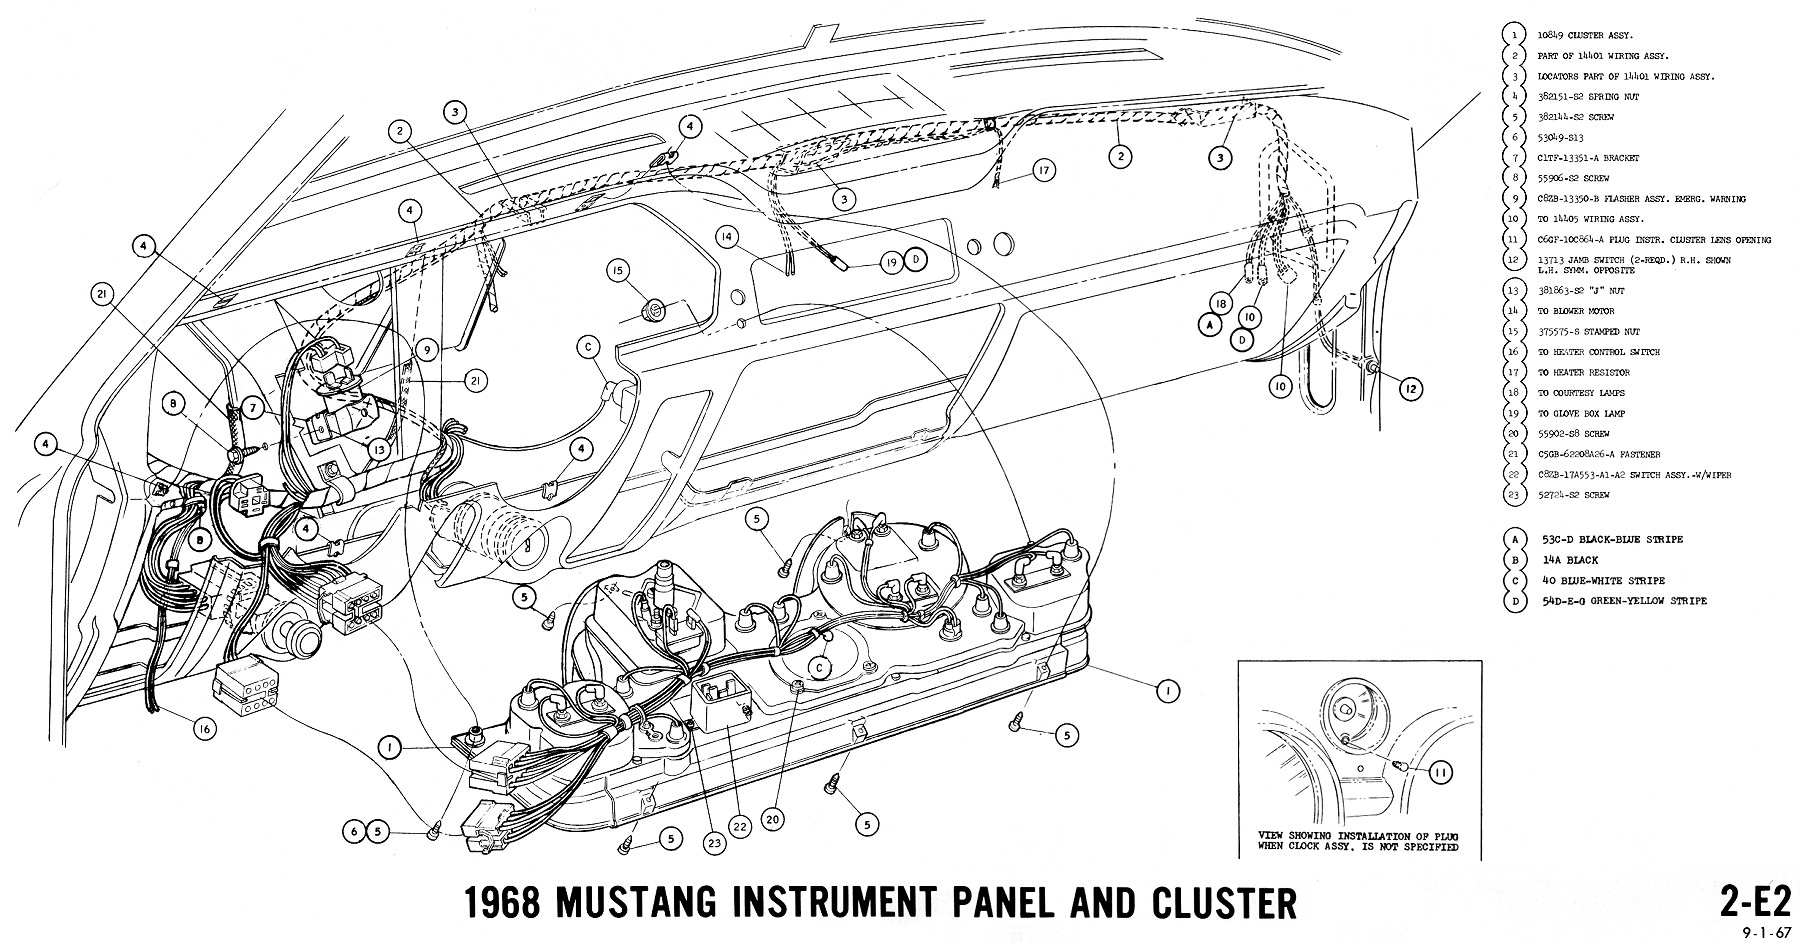 hight resolution of 1969 mustang engine diagram wiring diagrams 1969 ford mustang engine diagram wiring diagram load 1969 mustang